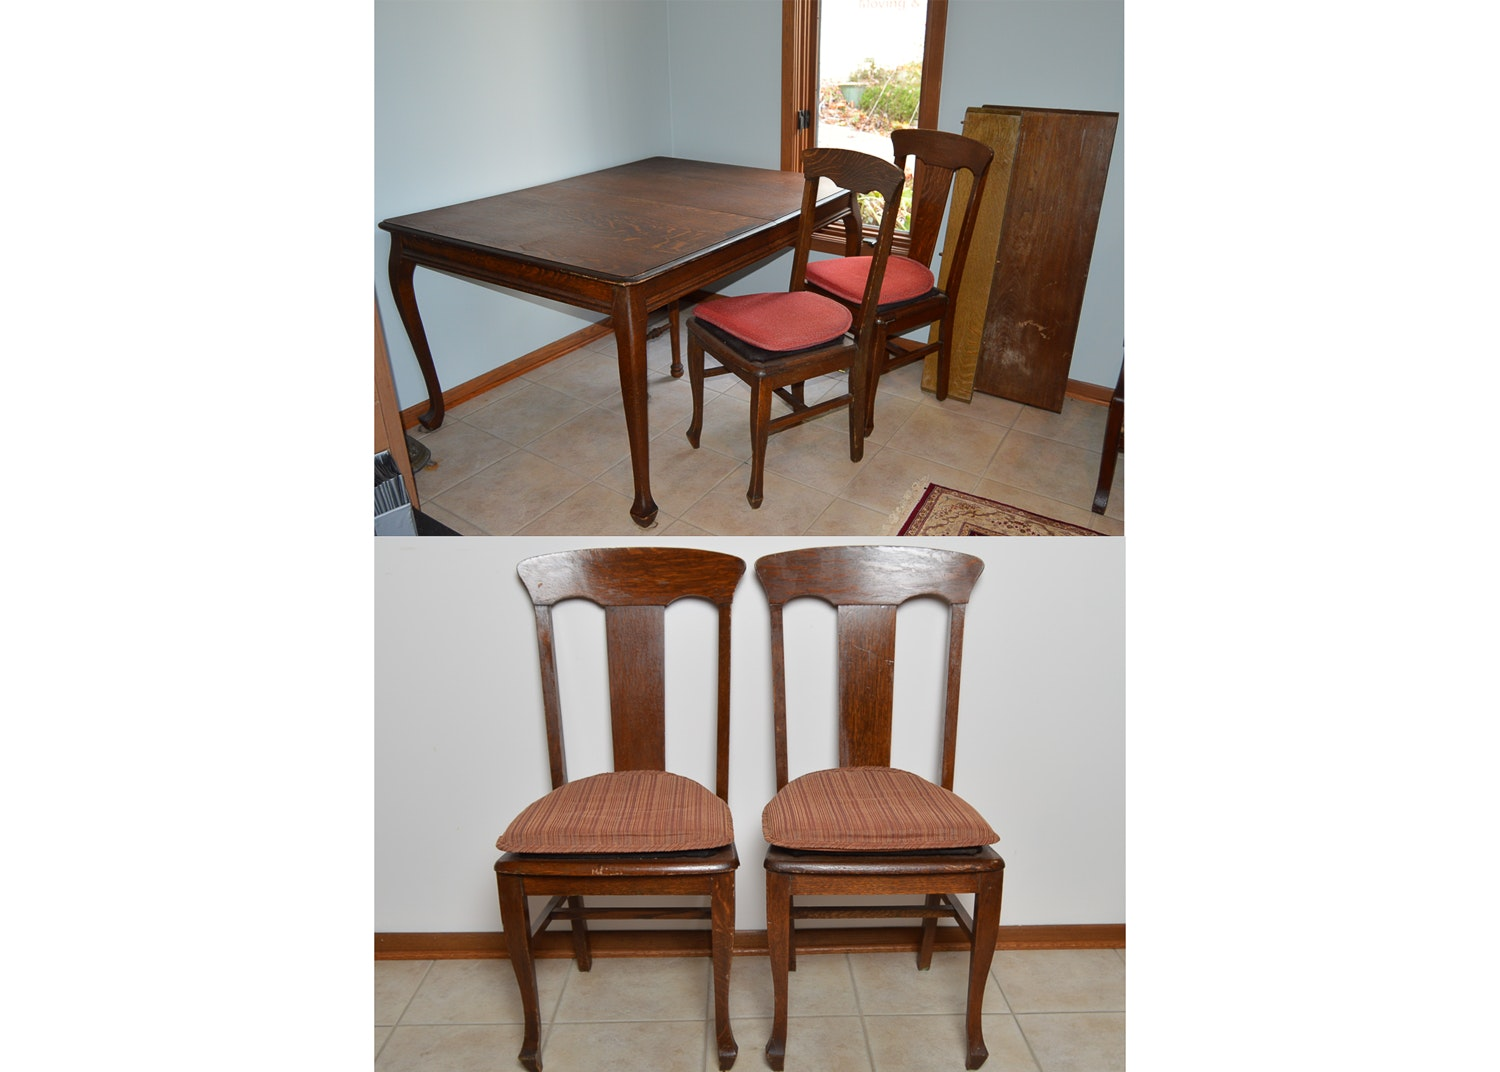 Vintage Walnut Dining Table with Chairs